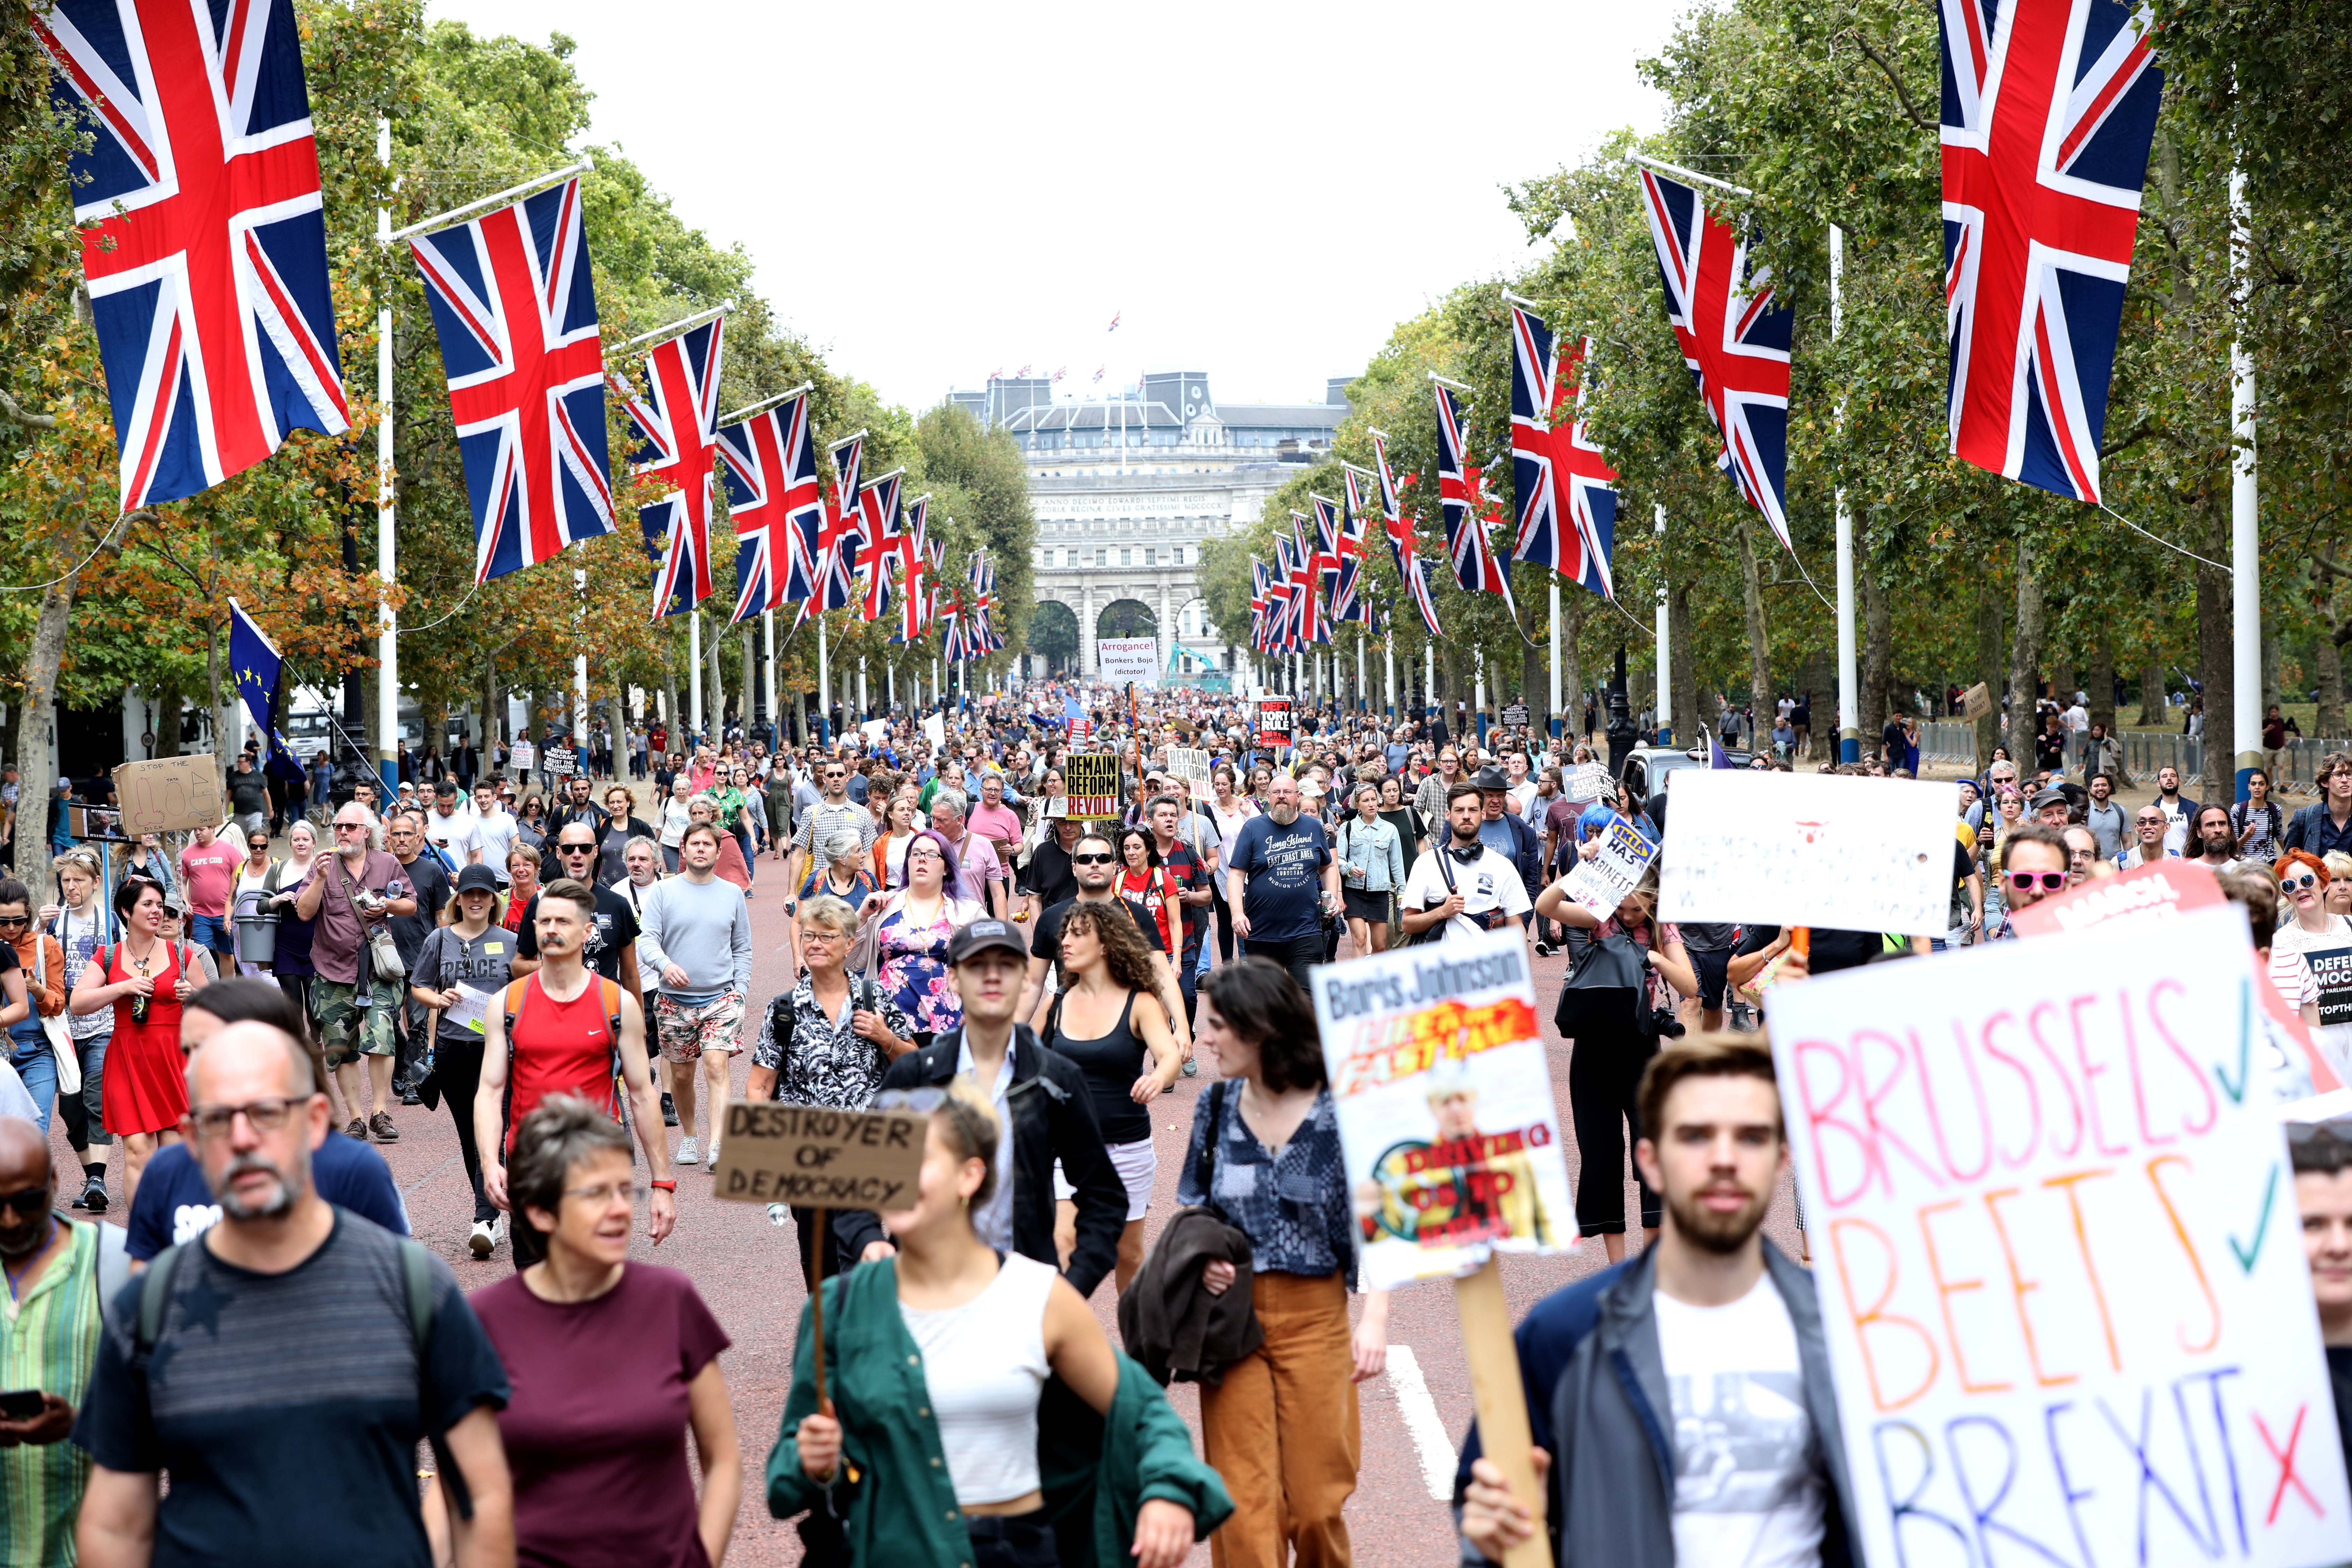 Protesters taking part in the 'Let Us Vote' day of action, organised by Another Europe is Possible campaign group in central London to demonstrate against Prime Minister Boris Johnson's decision to suspend Parliament for up to five weeks before a Queen's Speech on October 14. (Photo by Rick Findler/PA Images via Getty Images)